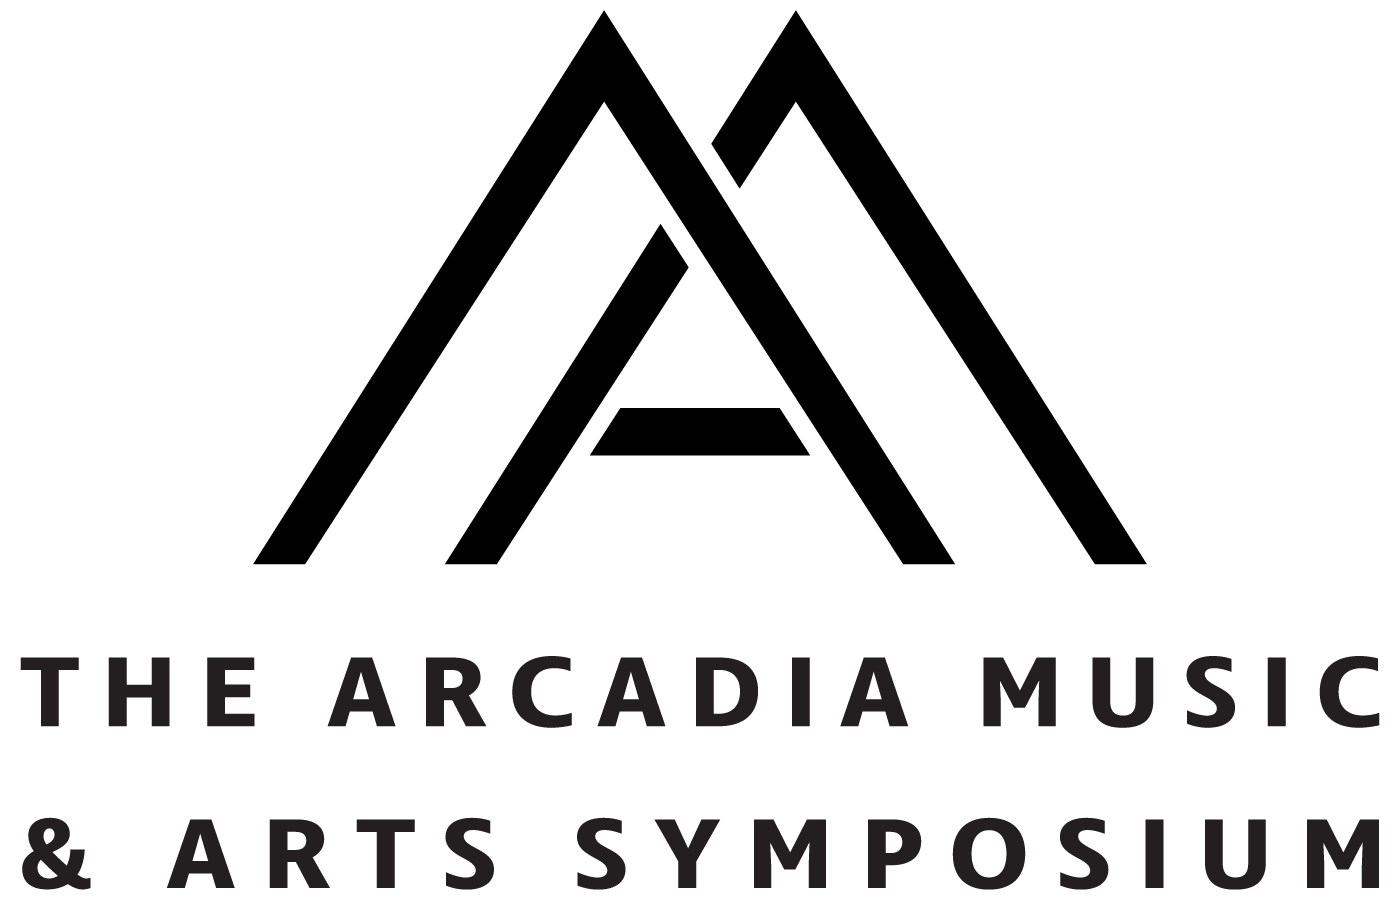 The Arcadia Music & Arts Symposium